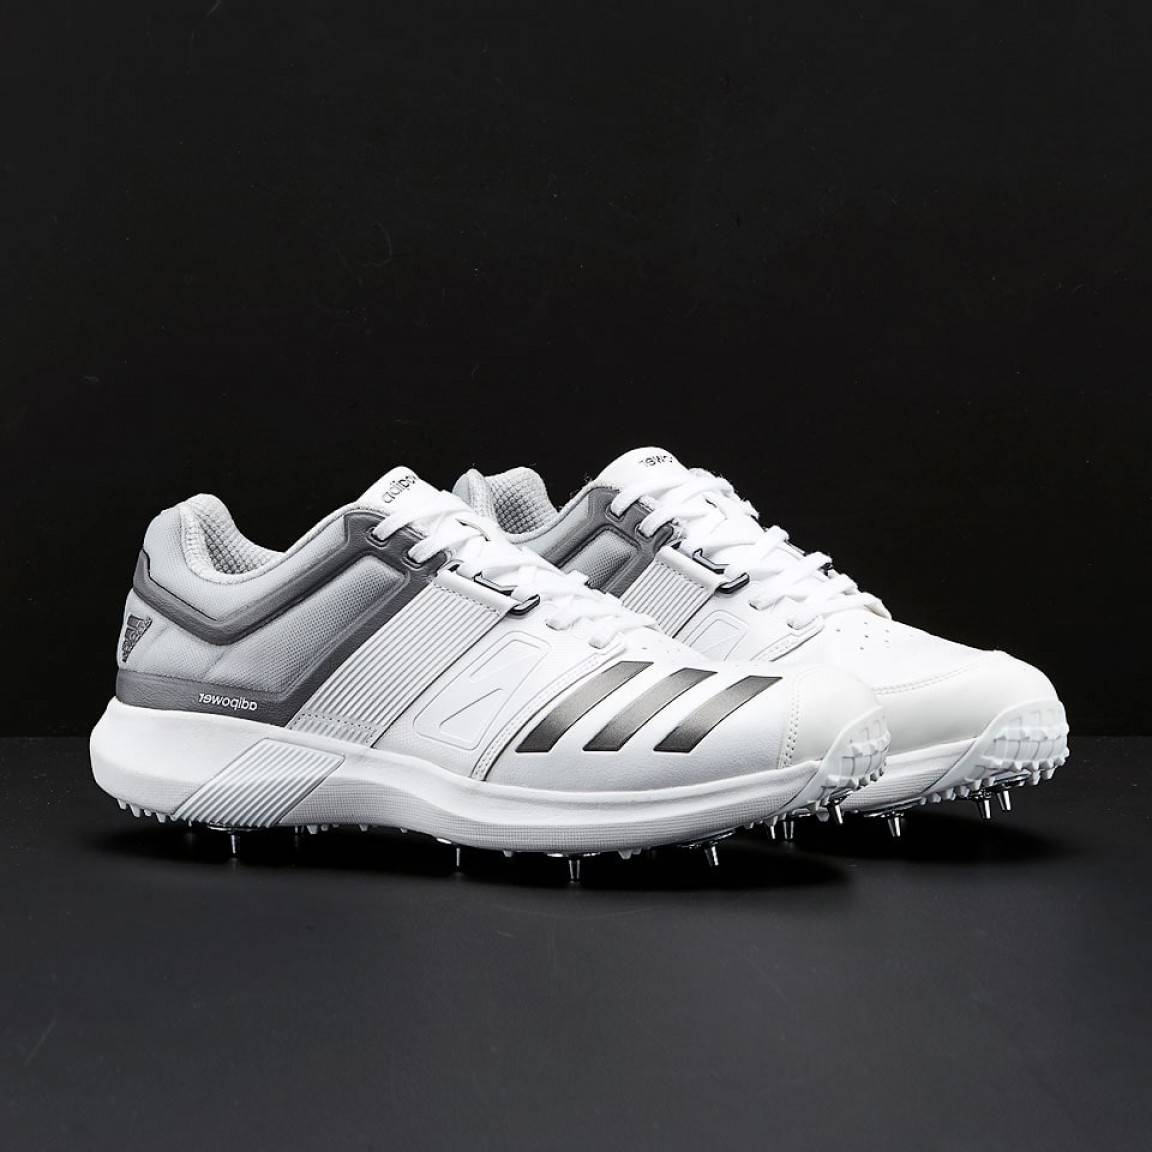 Adidas Brand Vector: Adidas Adipower Vector White Metallic Grey Mens Shoes Cm